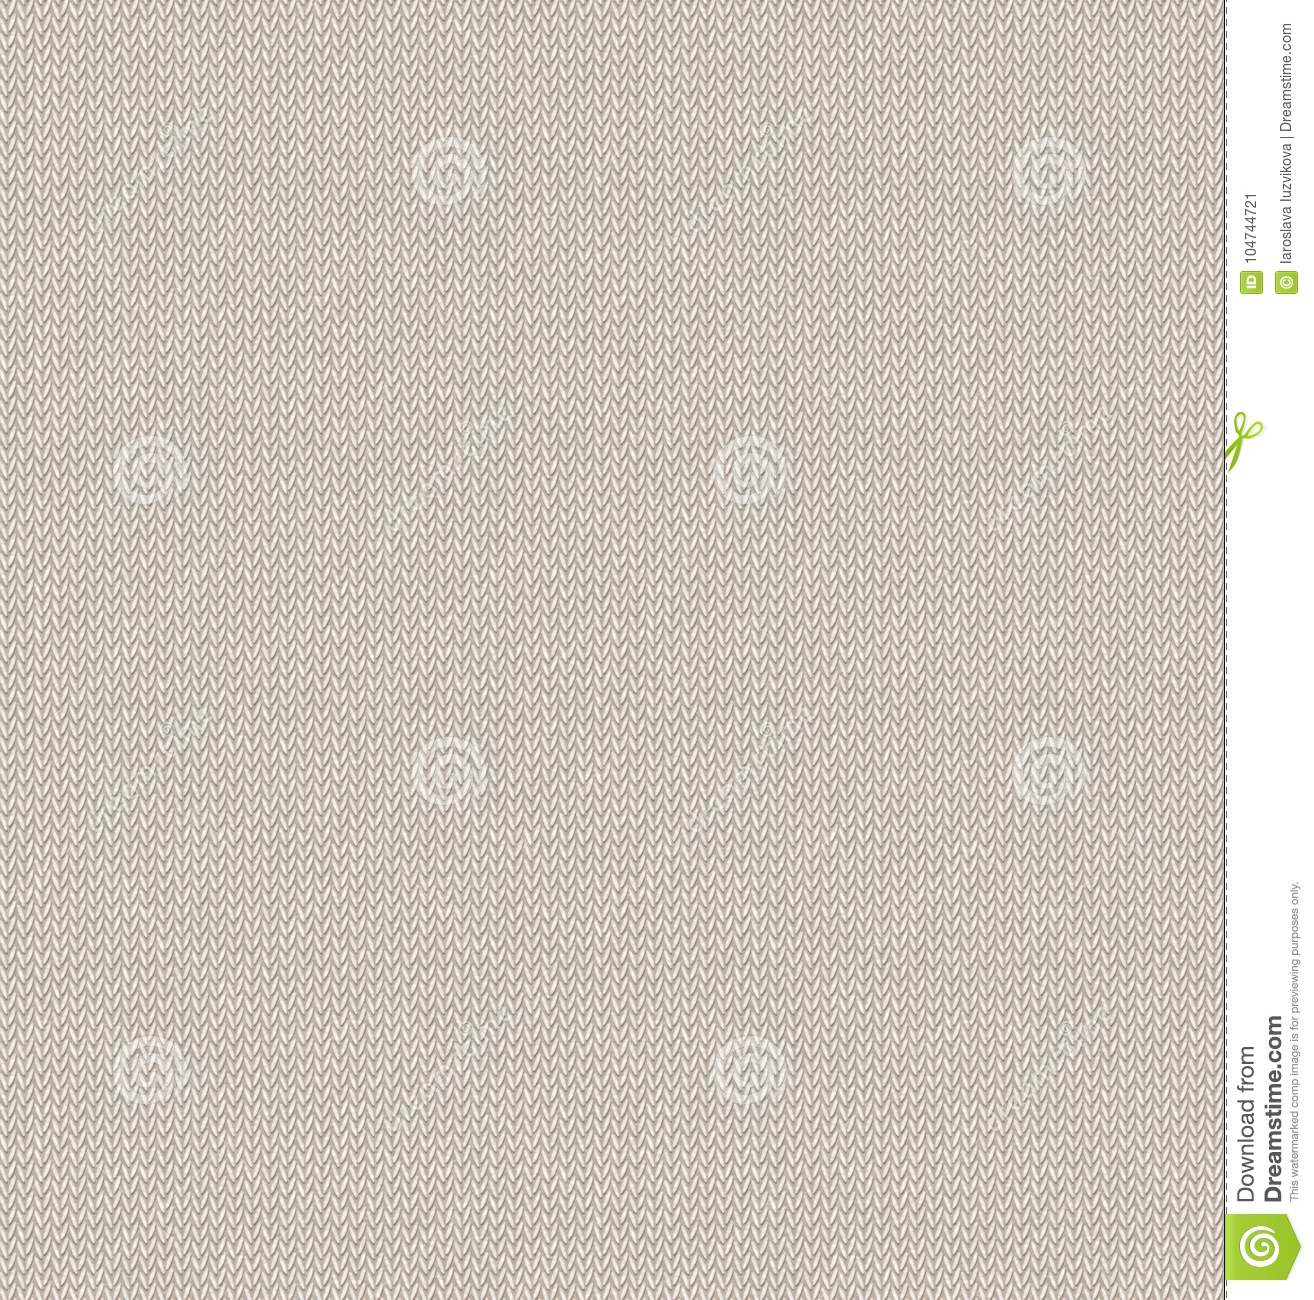 68c9738153e7 White Knitted Fabric Texture seamless background. Realistic knit vector  pattern. Winter sweater christmas illustration